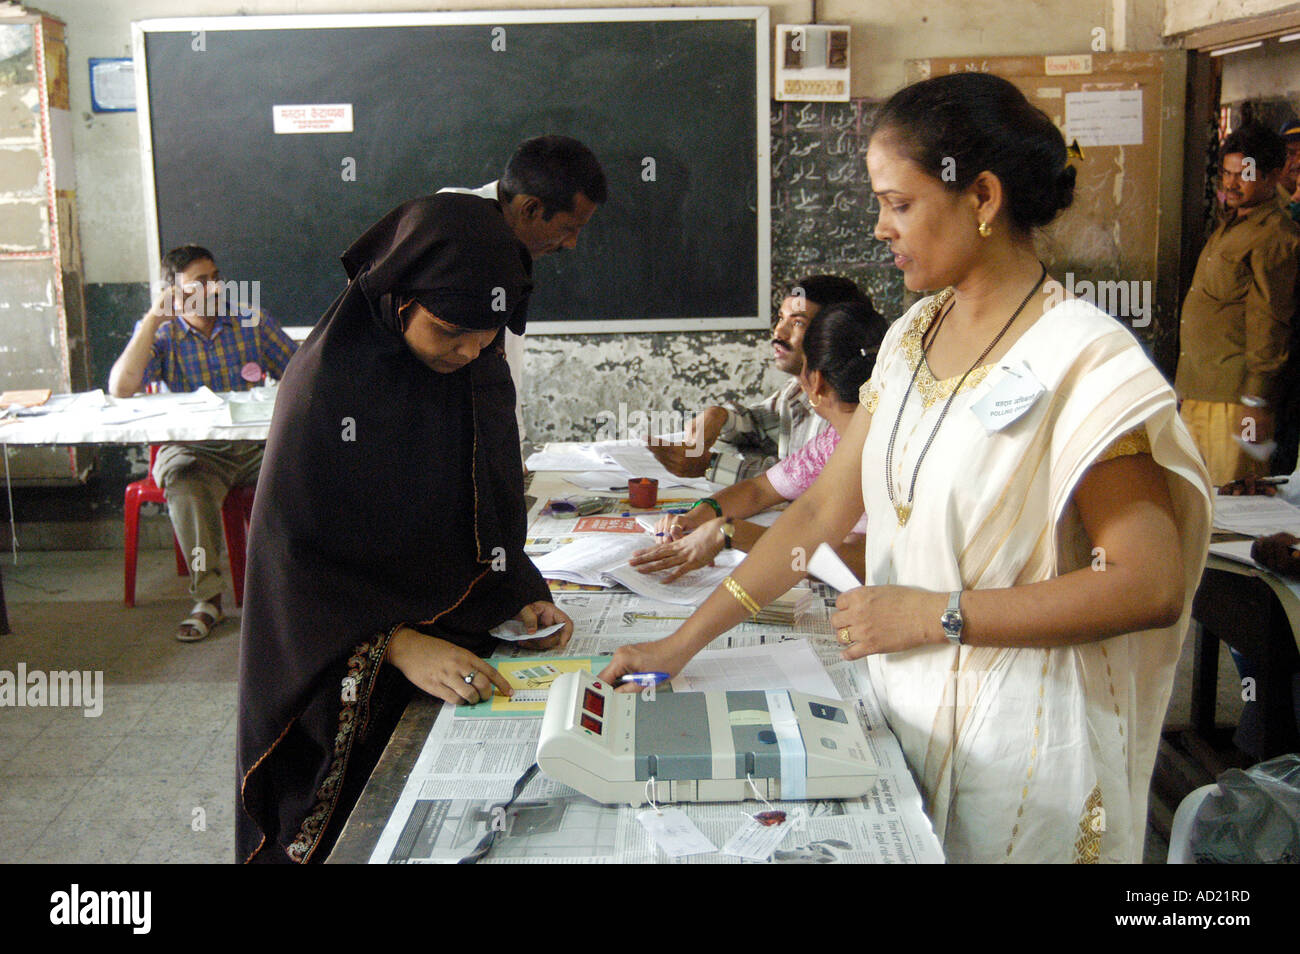 Indian Muslim woman being identified before voting in Elections India - Stock Image